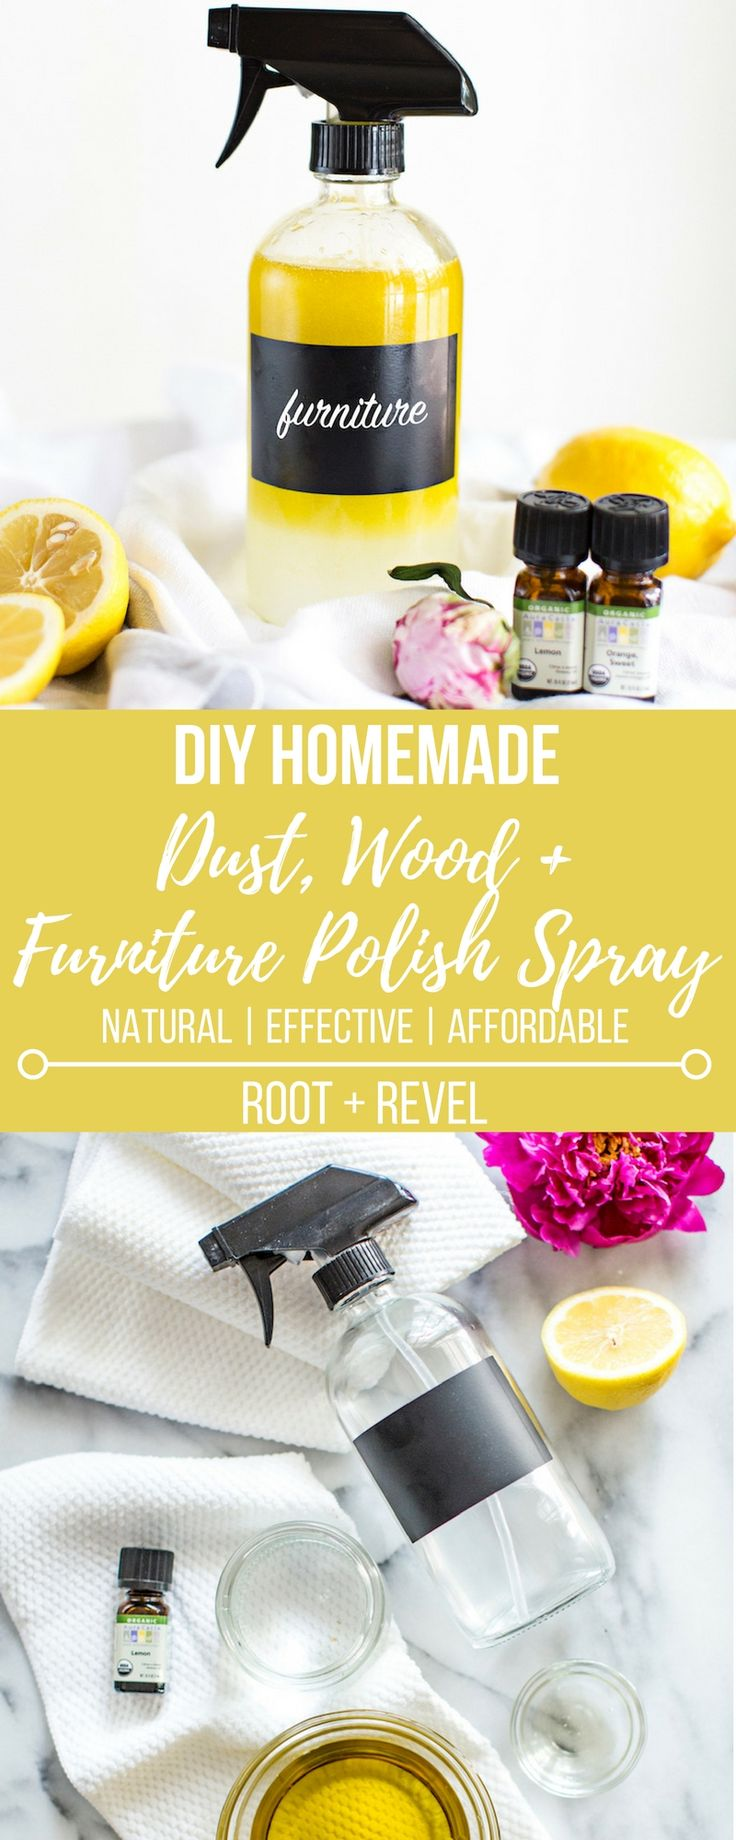 This DIY homemade dust, wood + furniture polish spray is a safe, affordable and…